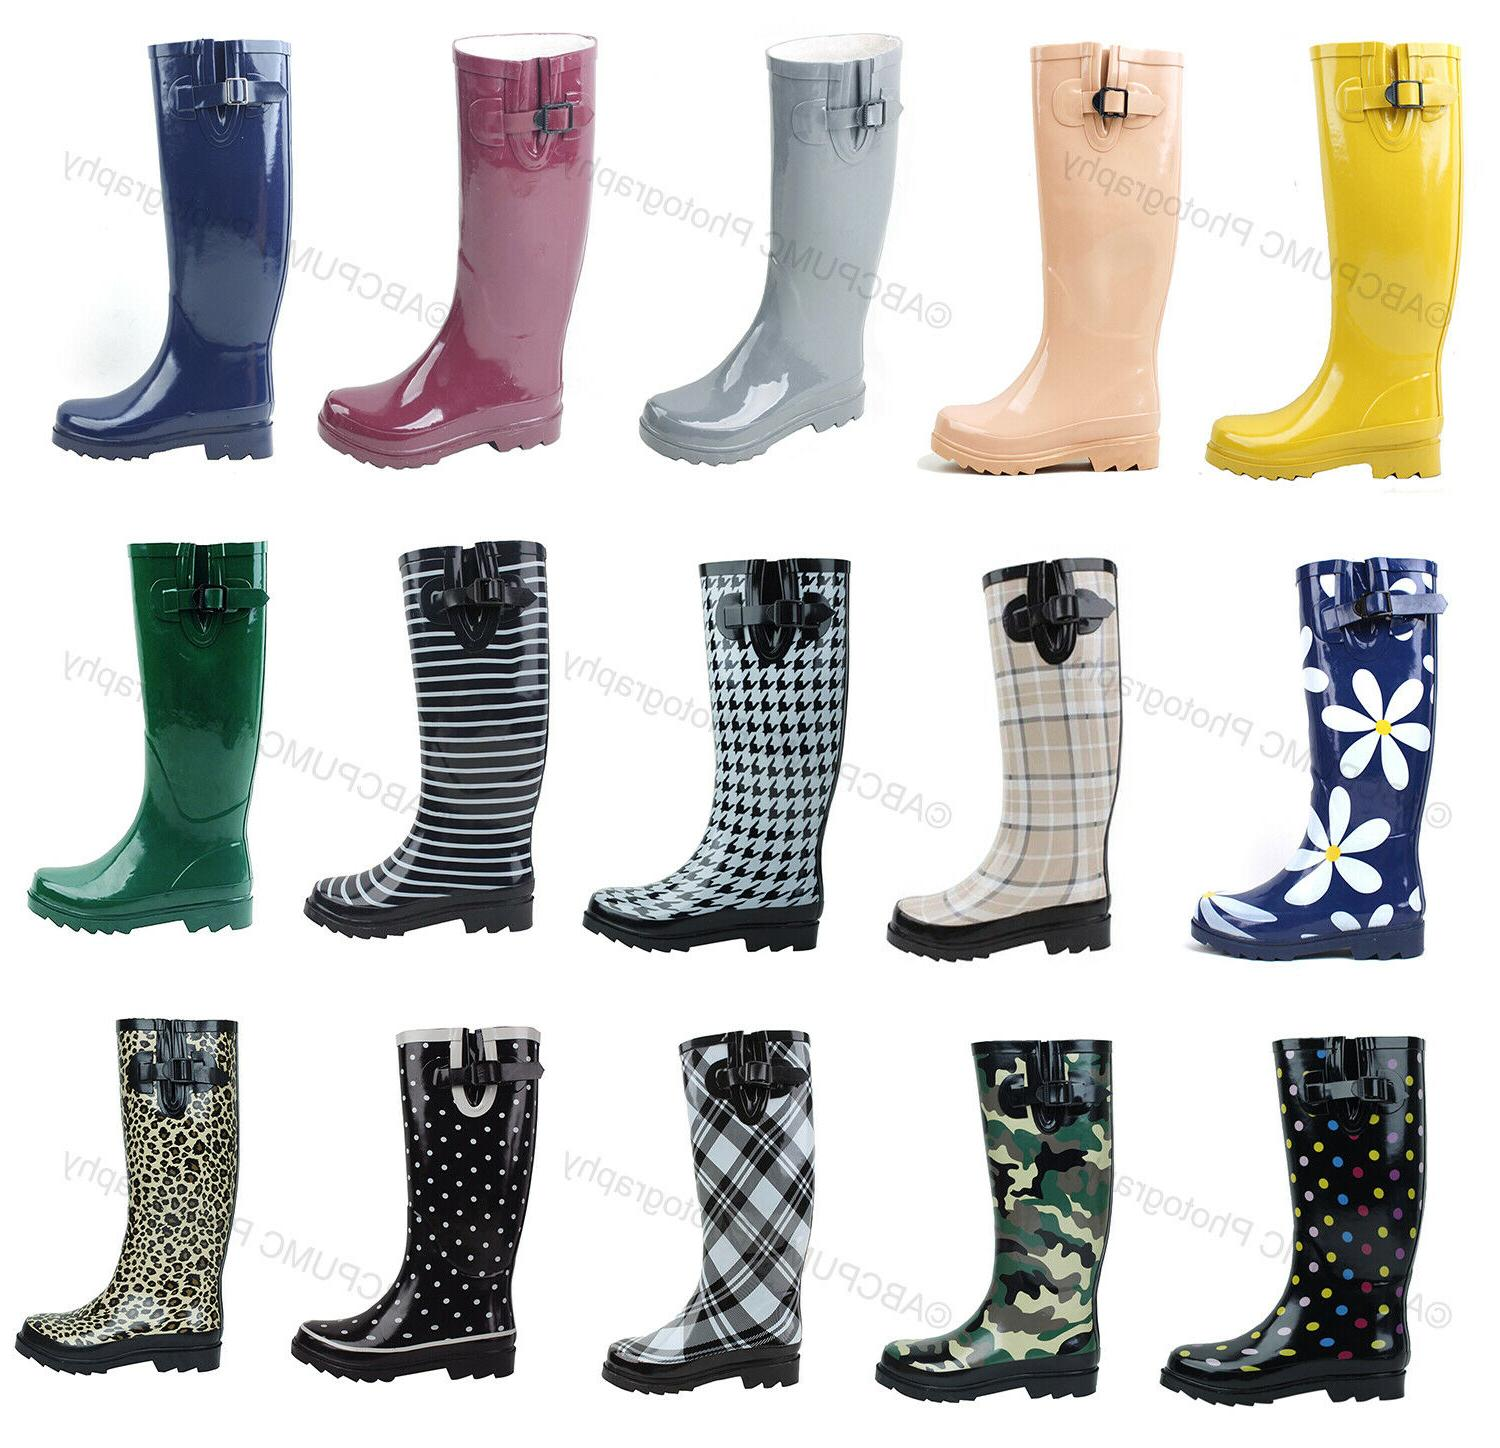 new womens flat wellies mid calf rubber